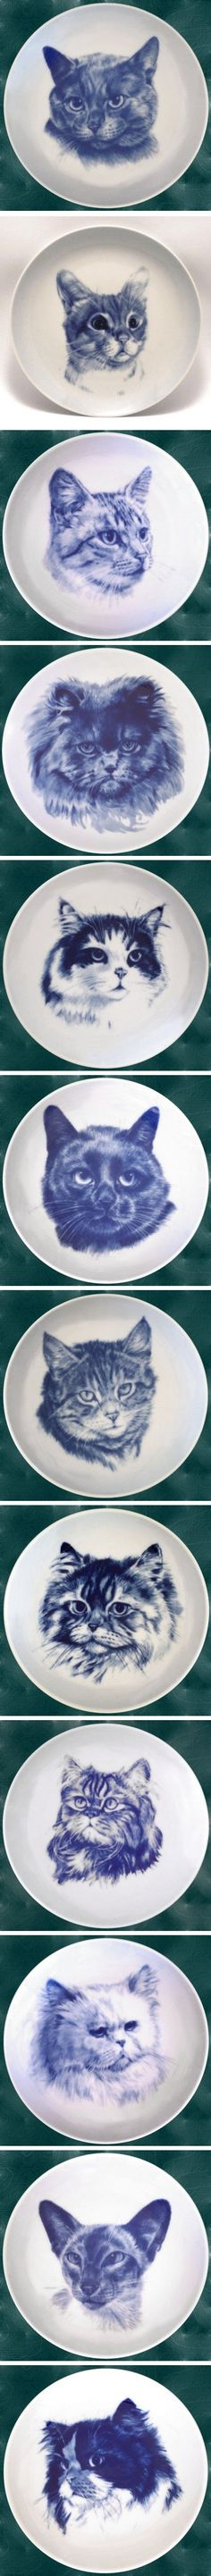 Cat plates: British Blue; Burmese; European Shortair - Silver Tabby; Persian Blue; Norwegian Forest Cat; European Shorthair; Manx; Persian Silver Tabby; Tabby Longhair; Persian White; Siamese Blue Point; Persian Tricolour http://dogplate.com/index.php?route=product/category&path=2